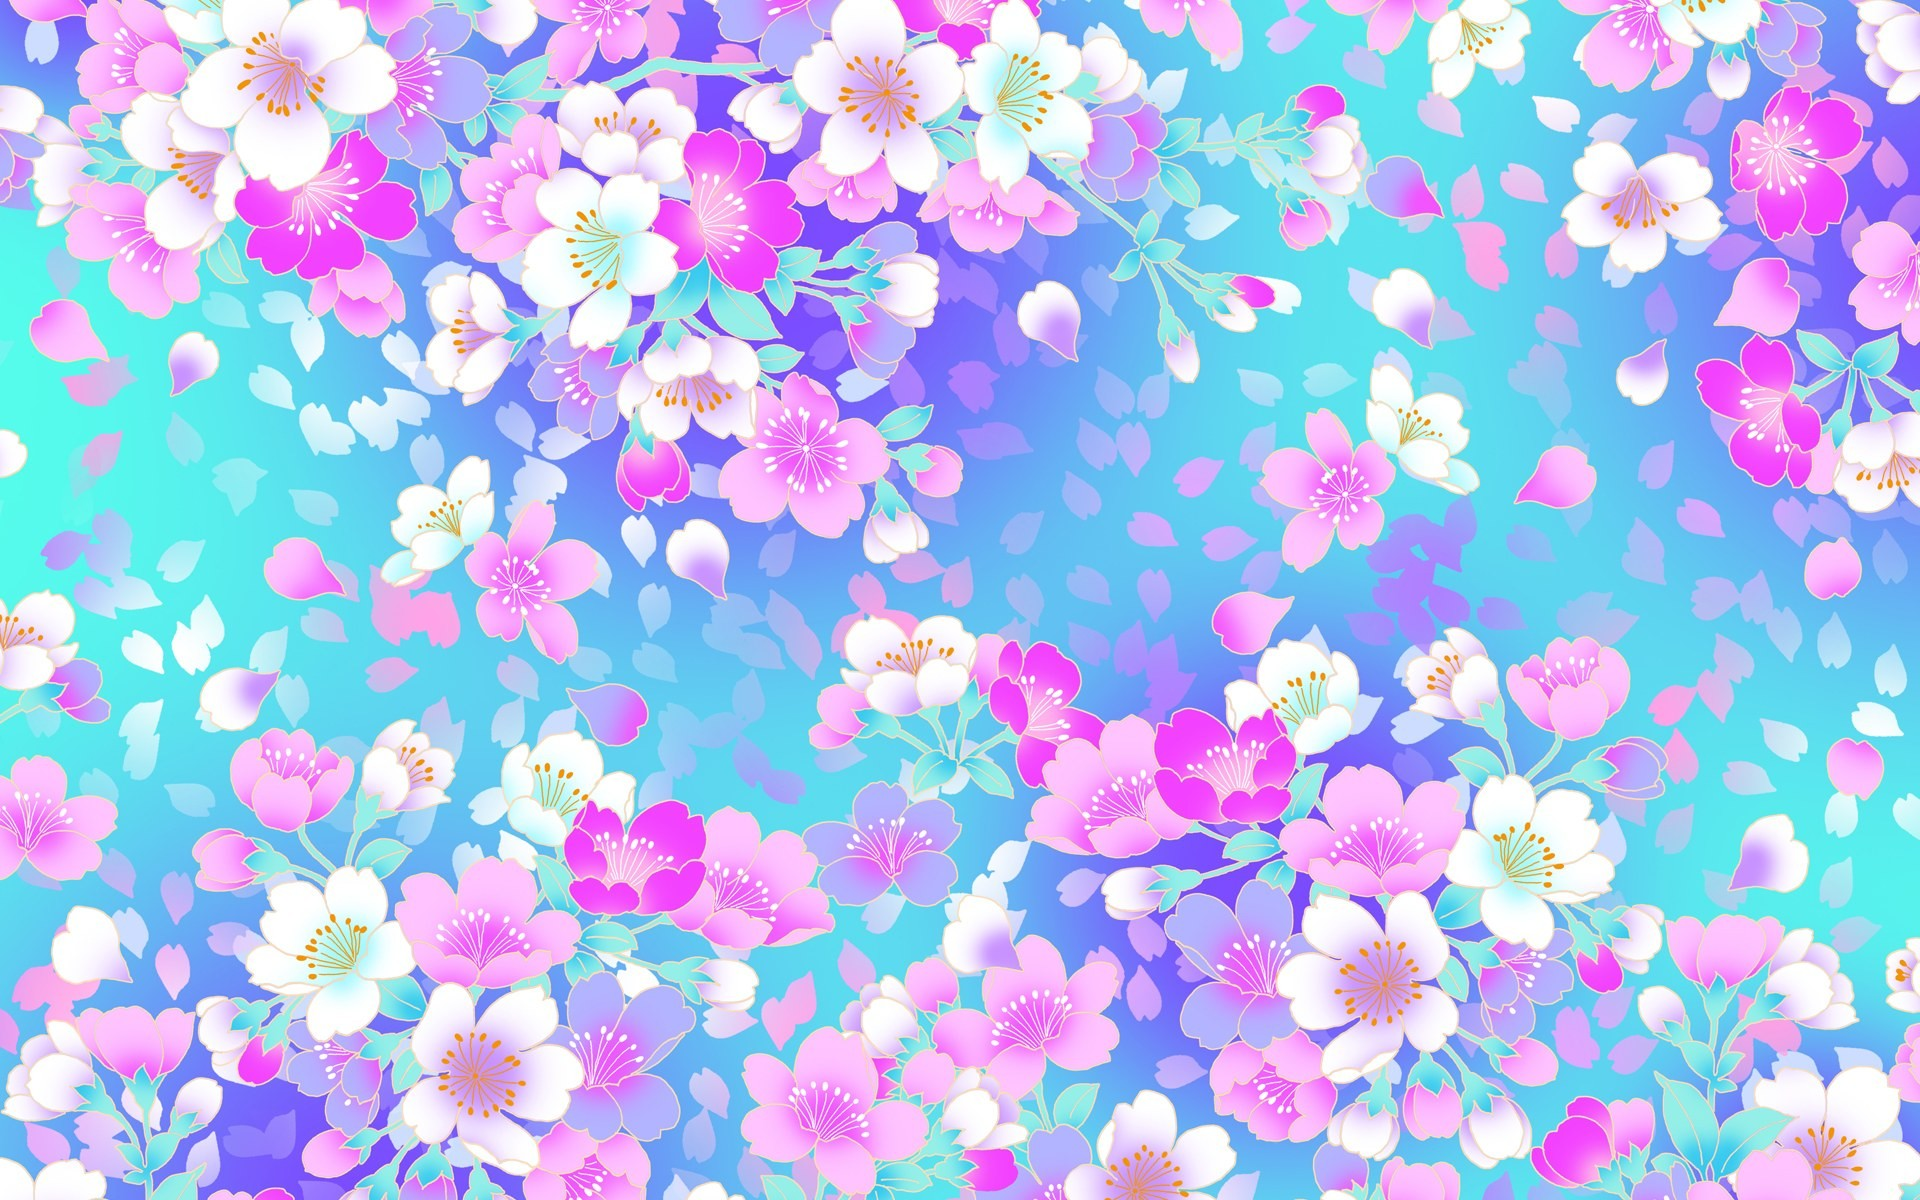 Girly wallpapers amazing wallpaper